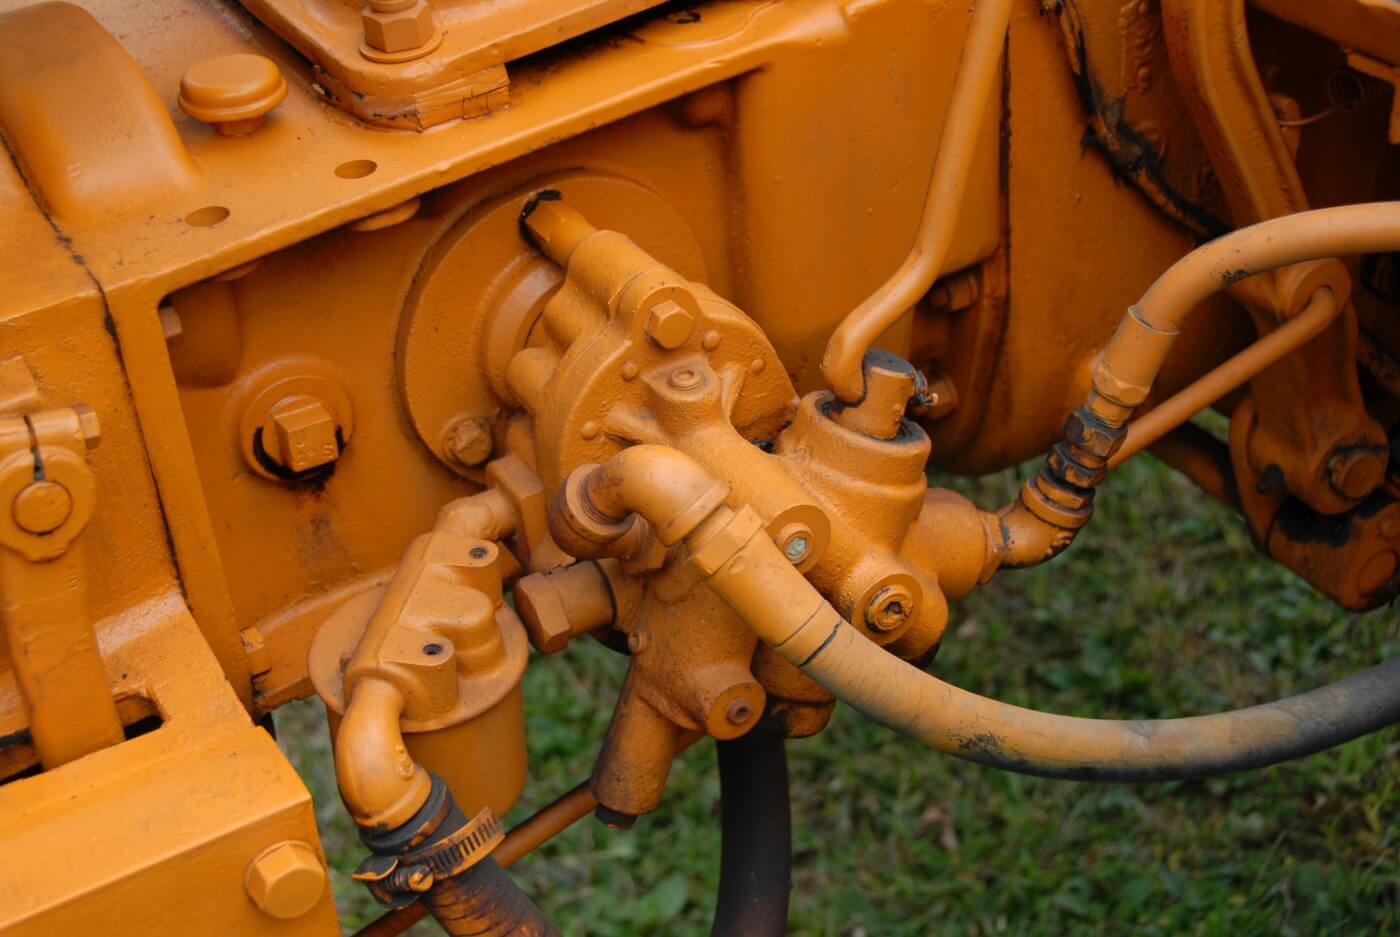 Sheppard had an optional hydraulic system, which was a premium feature in that era. The pump was a transmission driven, 11 GPM unit and capable of up to 1000 psi. The bypass was adjustable to raise or lower the pressure as needed according to the application.